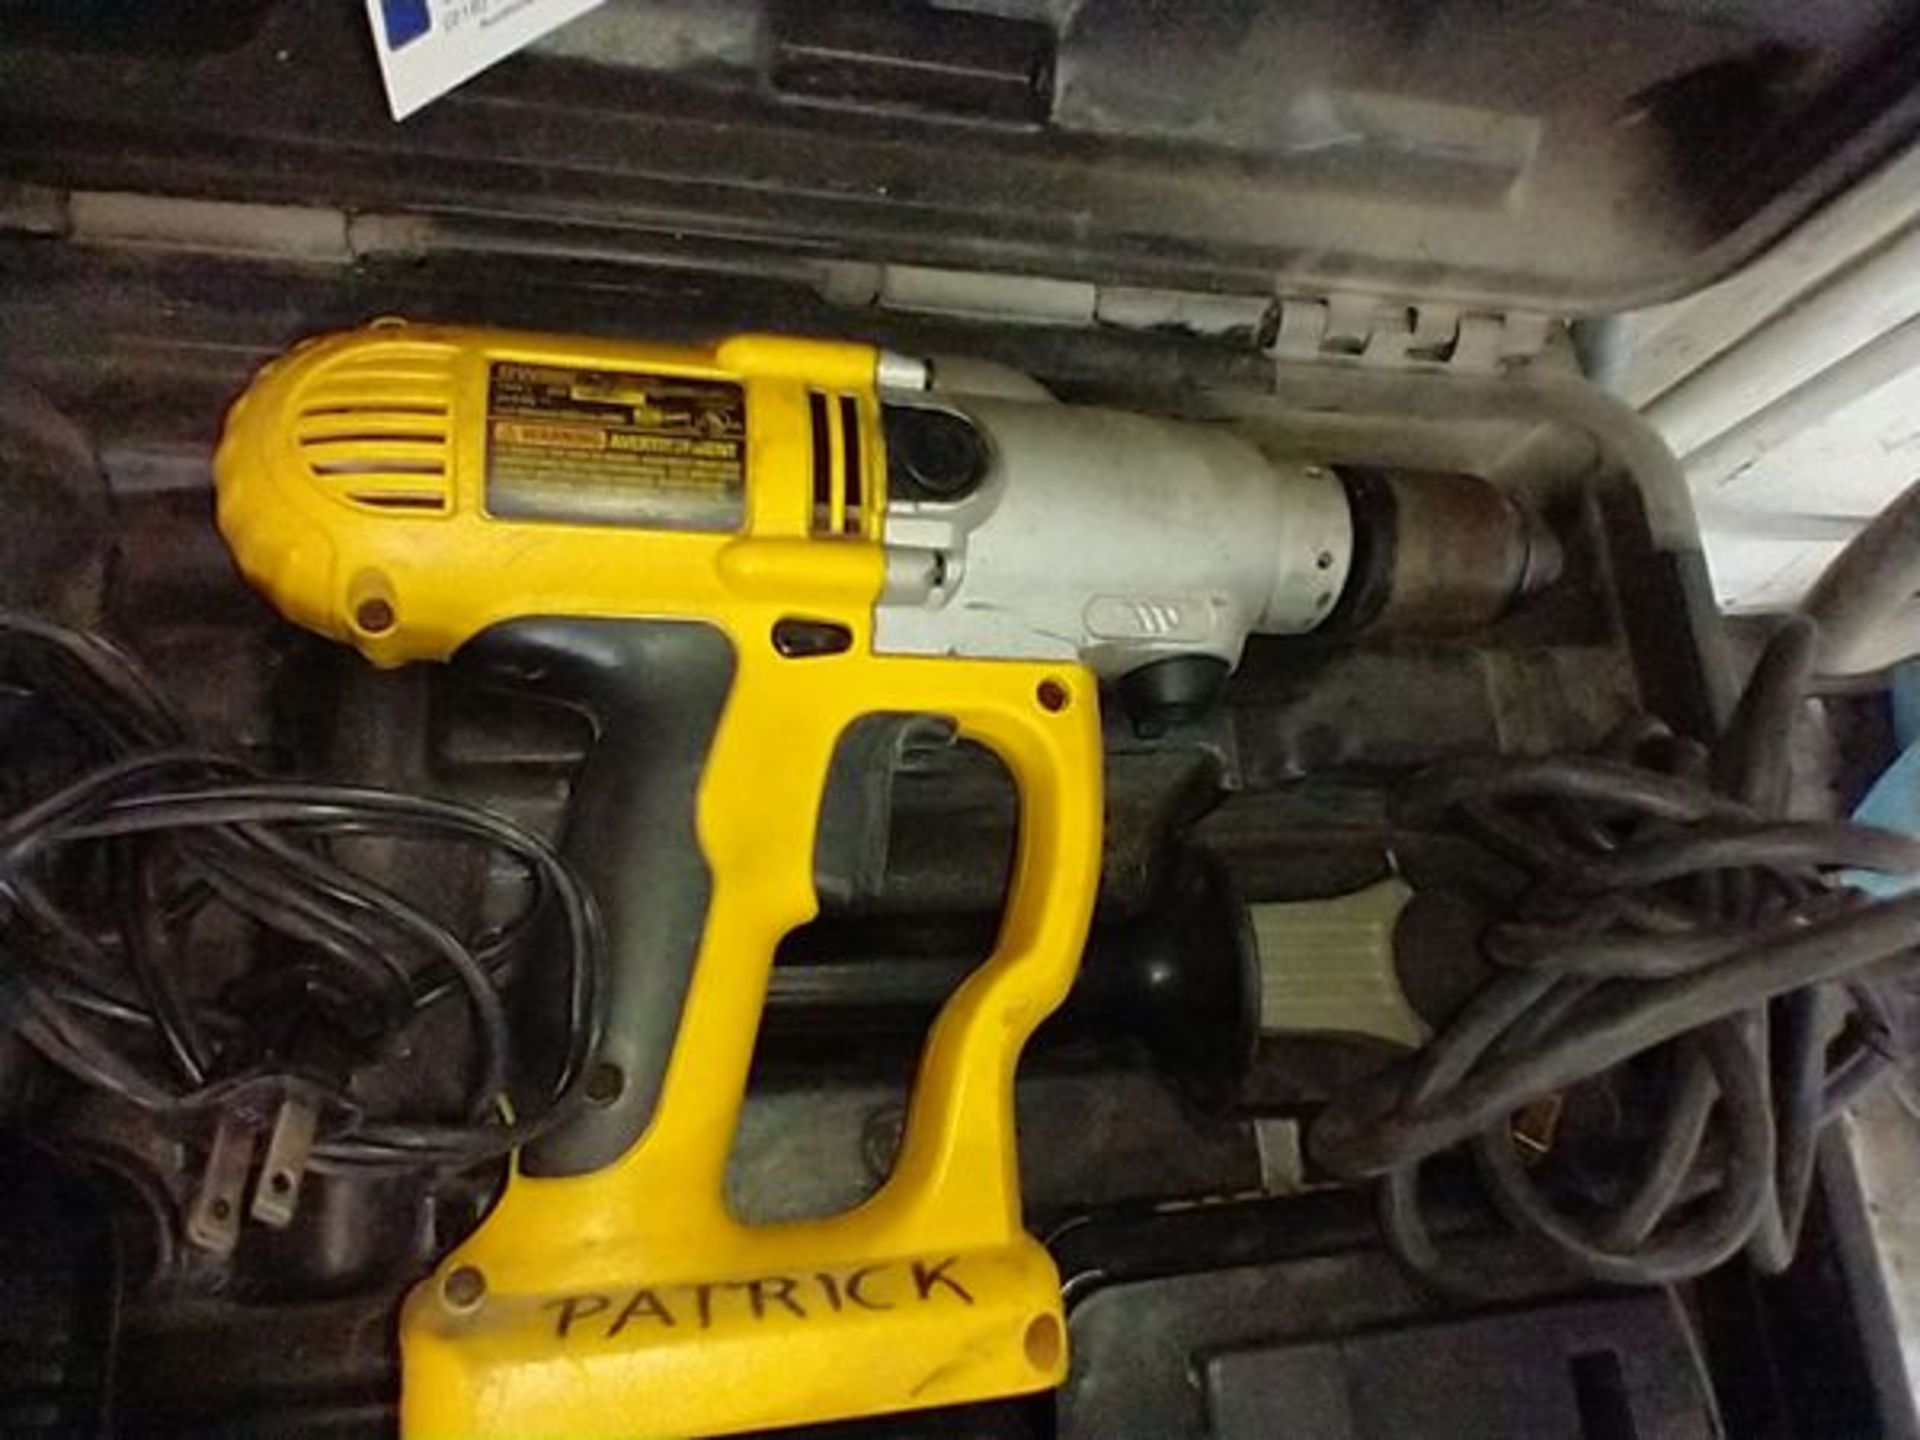 DEWALT DW006 24V HAMMER DRILL WITH 2 BATTERIES AND AC ADAPTER - Image 3 of 5